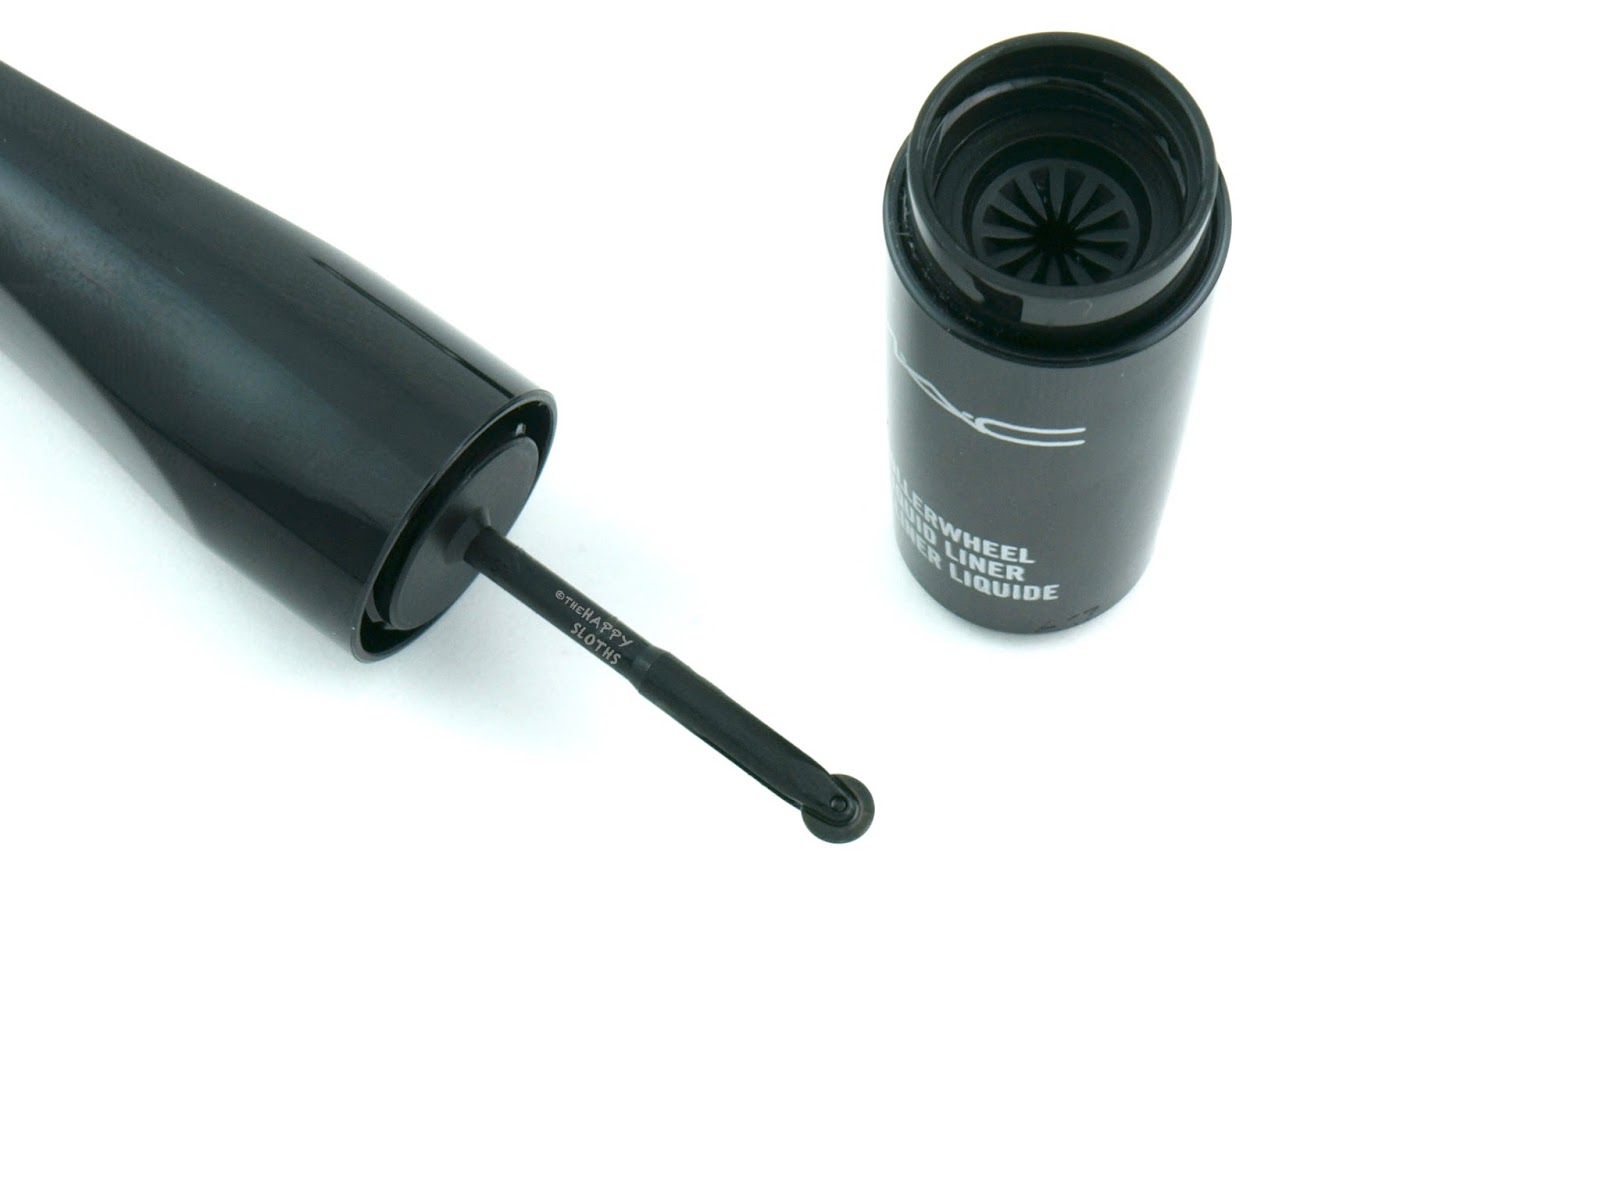 MAC Rollerwheel Liquid Liner: Review and Swatches